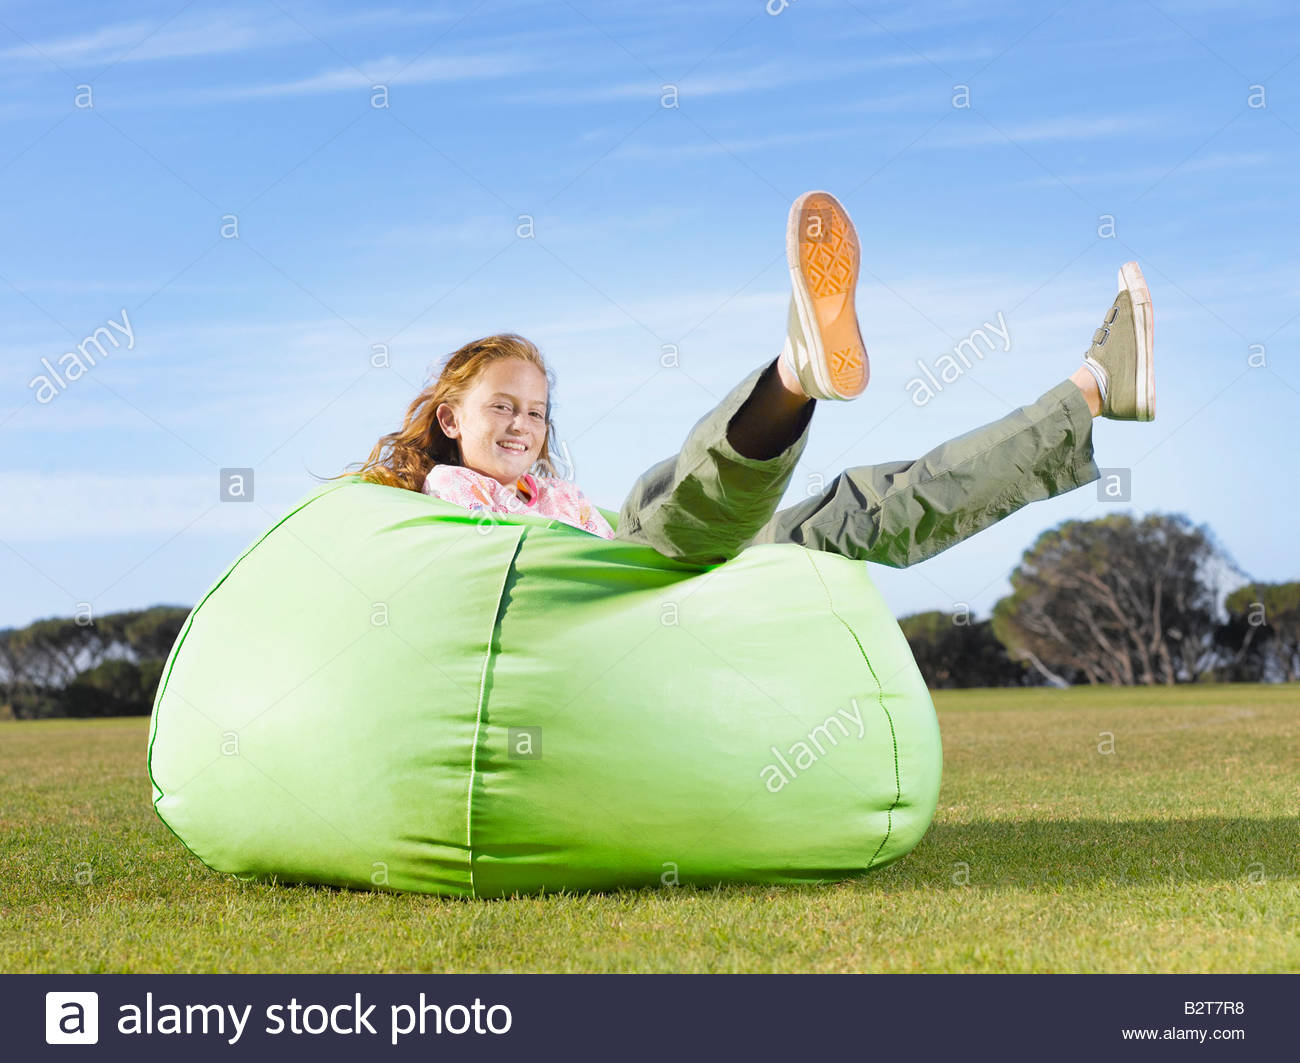 Young girl relaxing in bean bag outdoors - Stock Image